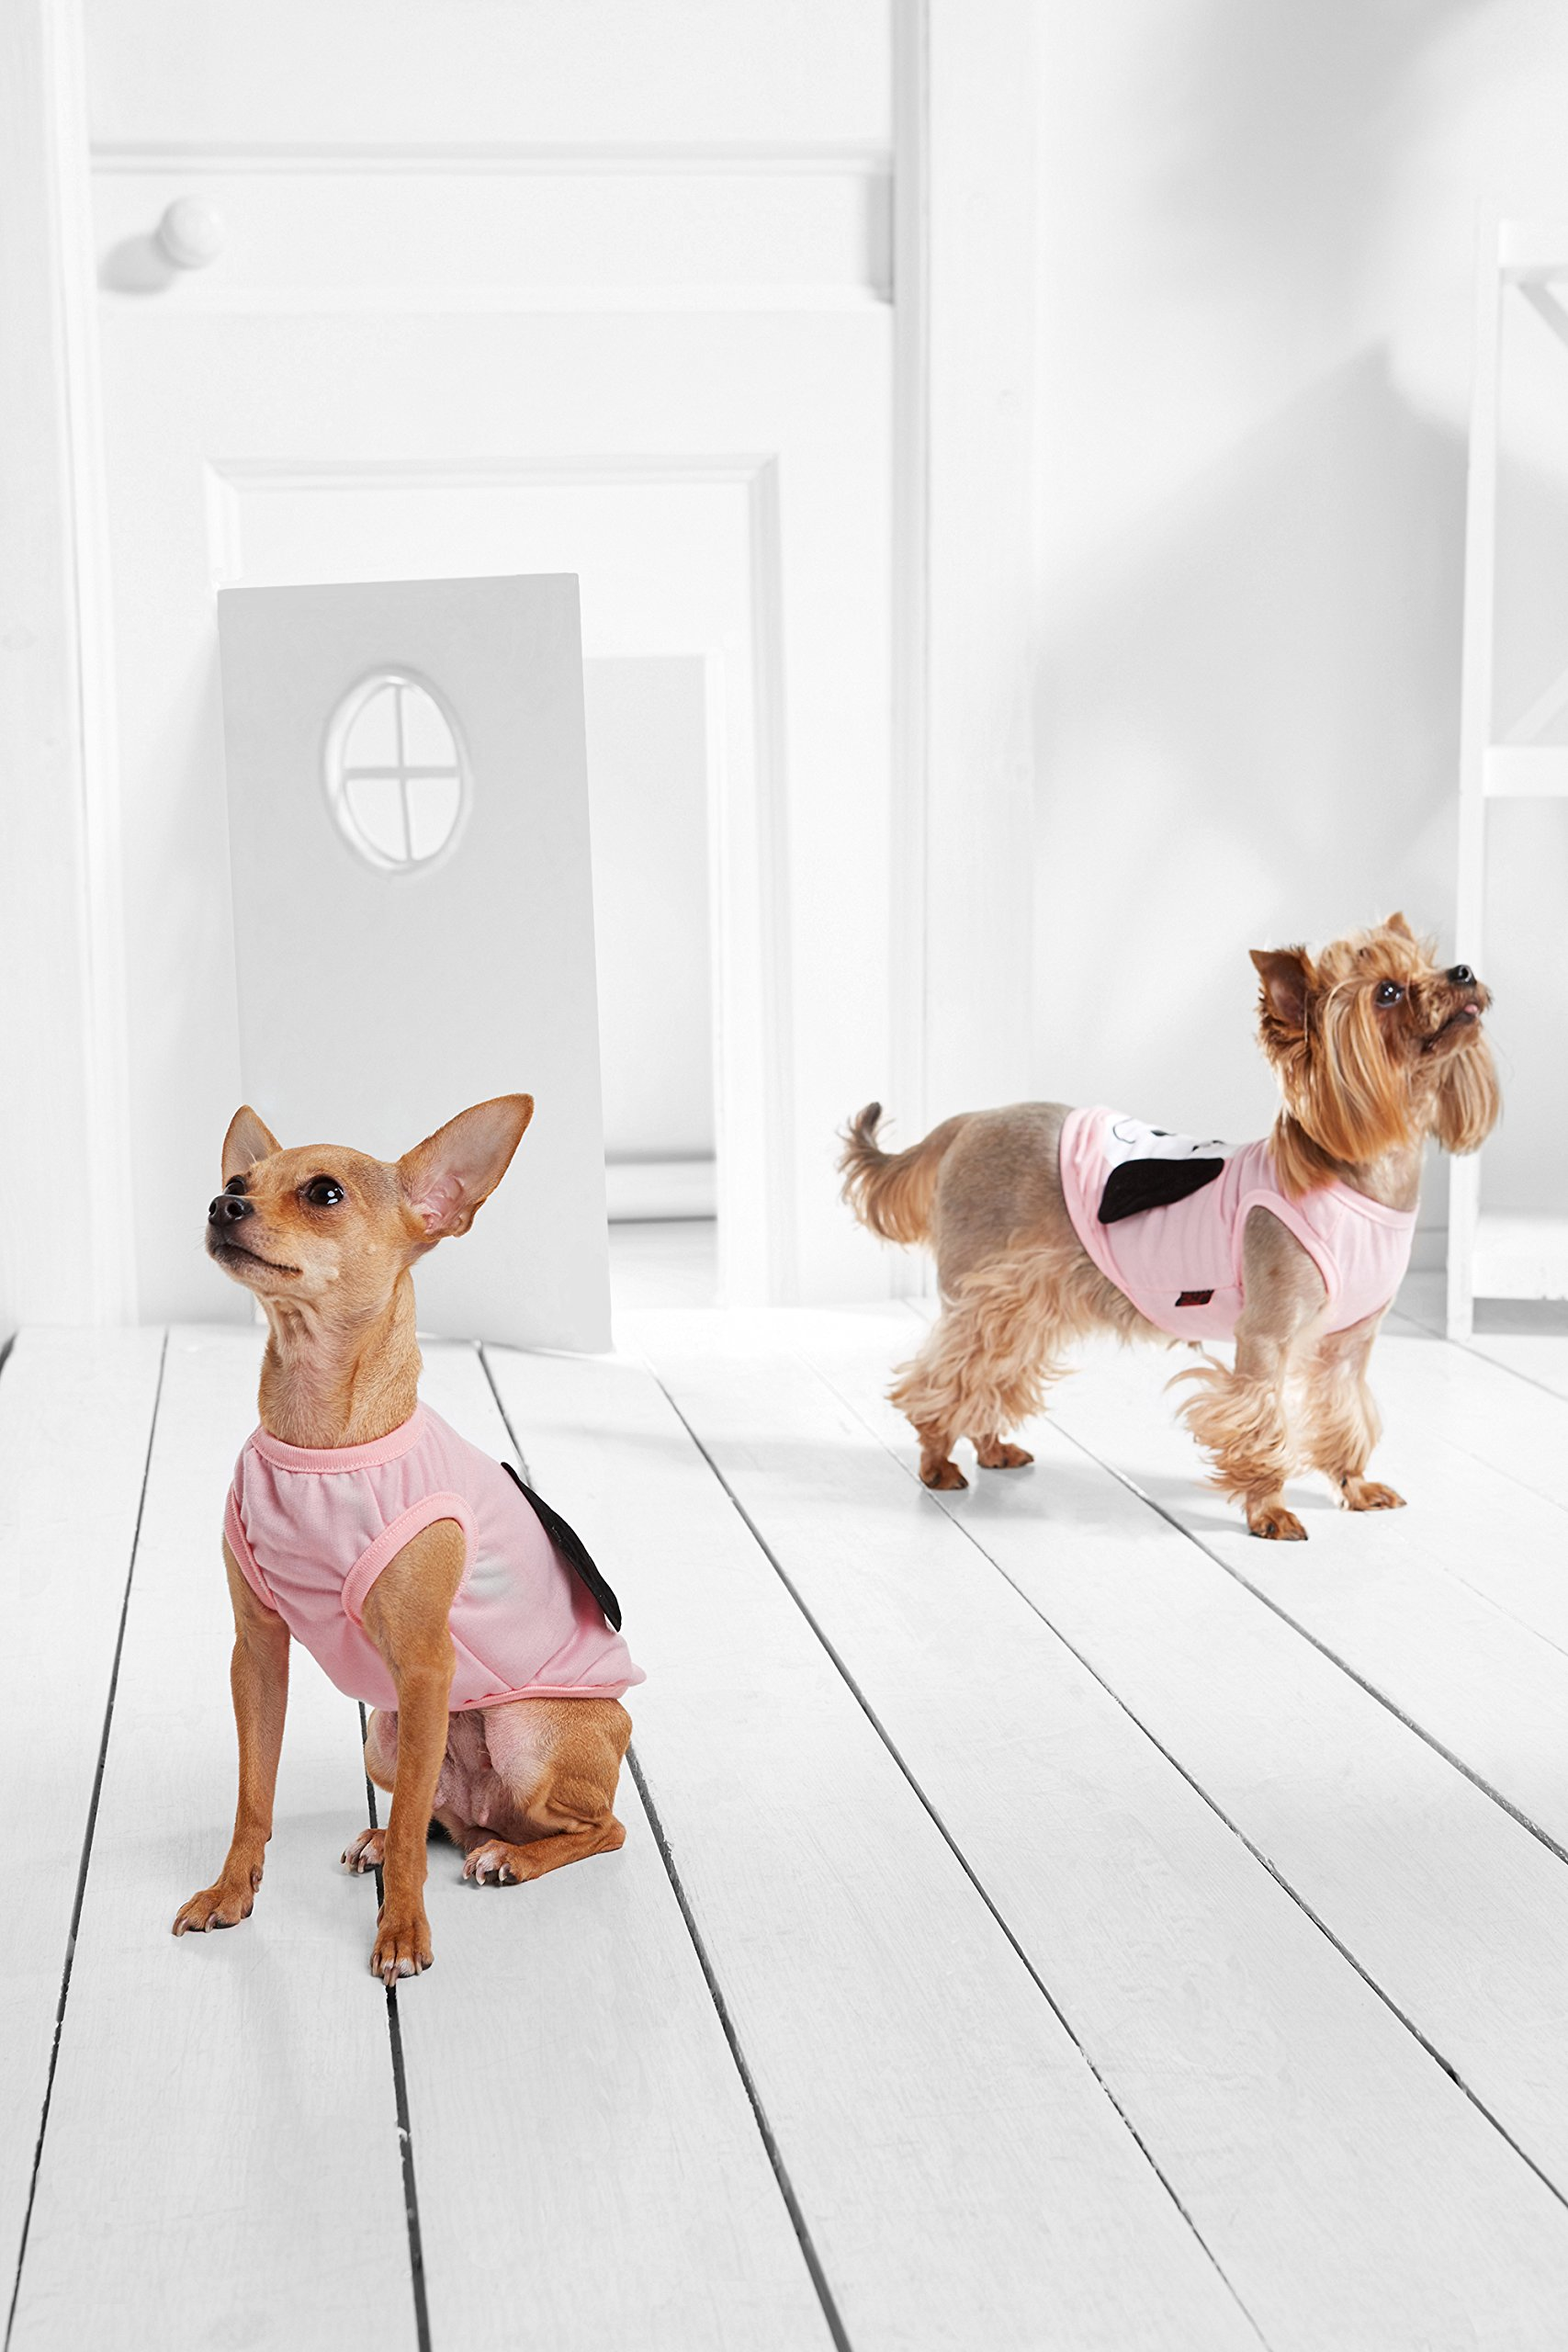 """Small Dog Shirt Tank Top Sleeveless Tee Funny Print Dogs Cotton Summer Clothes (Toy Plus: 10"""" / 5-9 lbs, Pink)"""